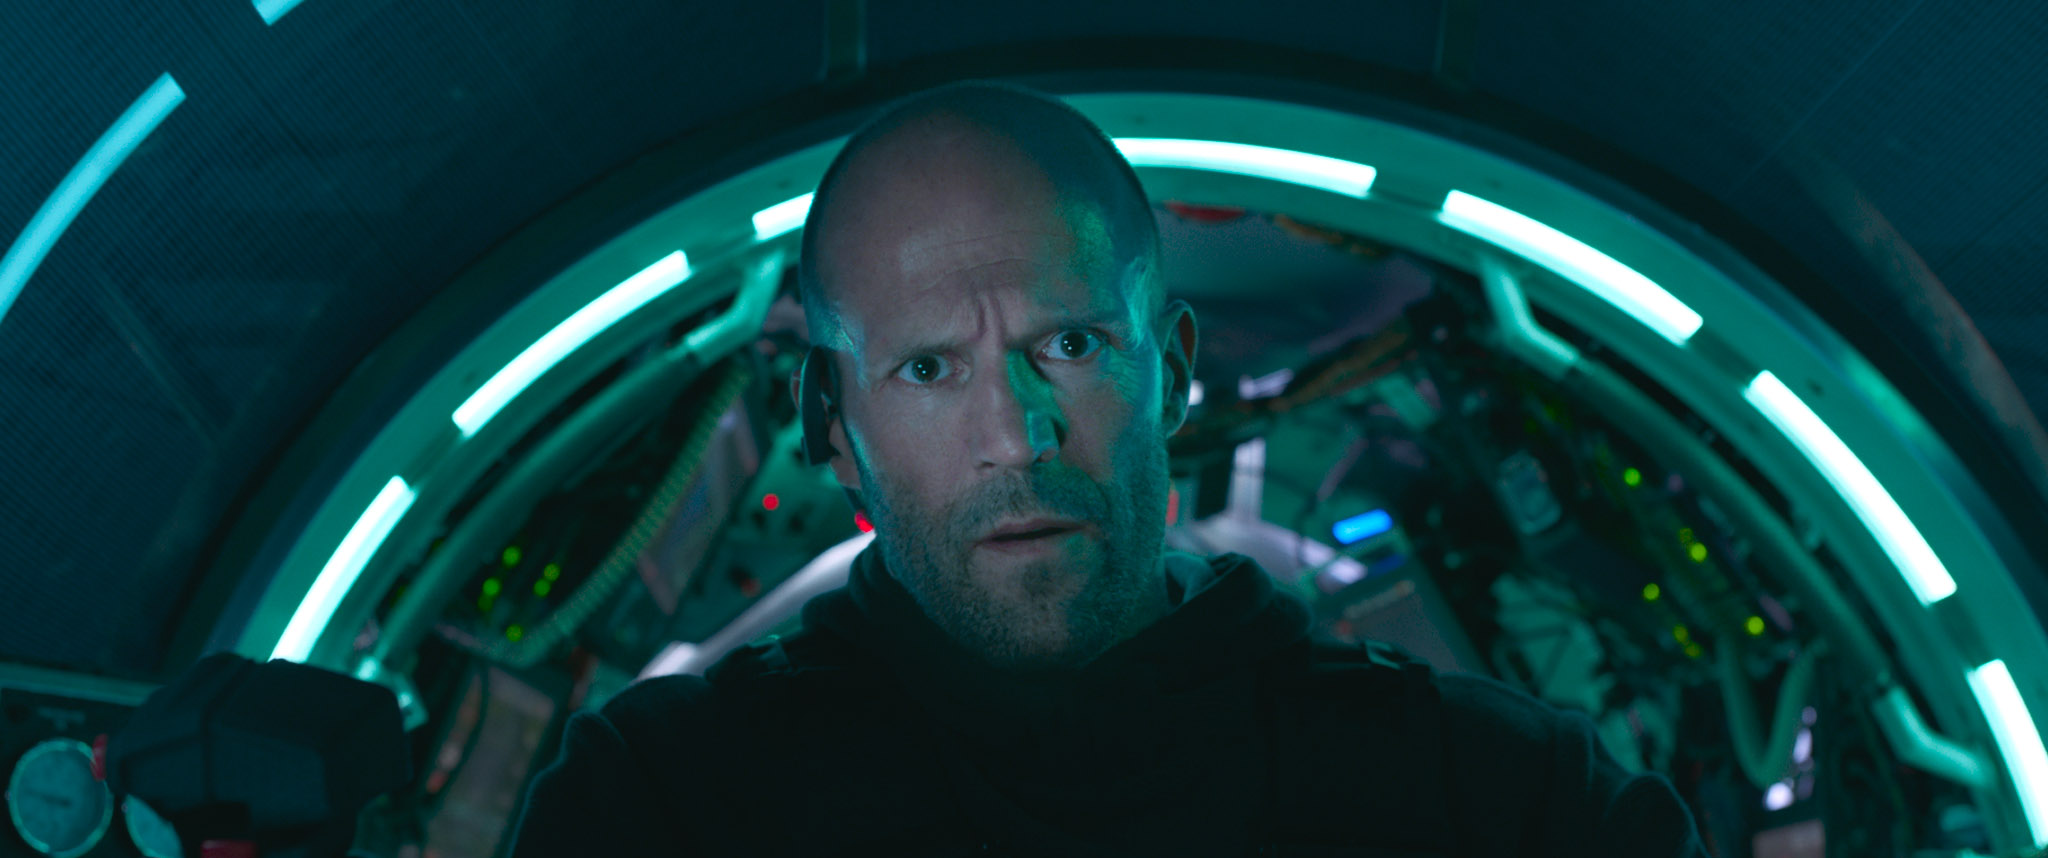 Buenos efectos digitales en The Meg